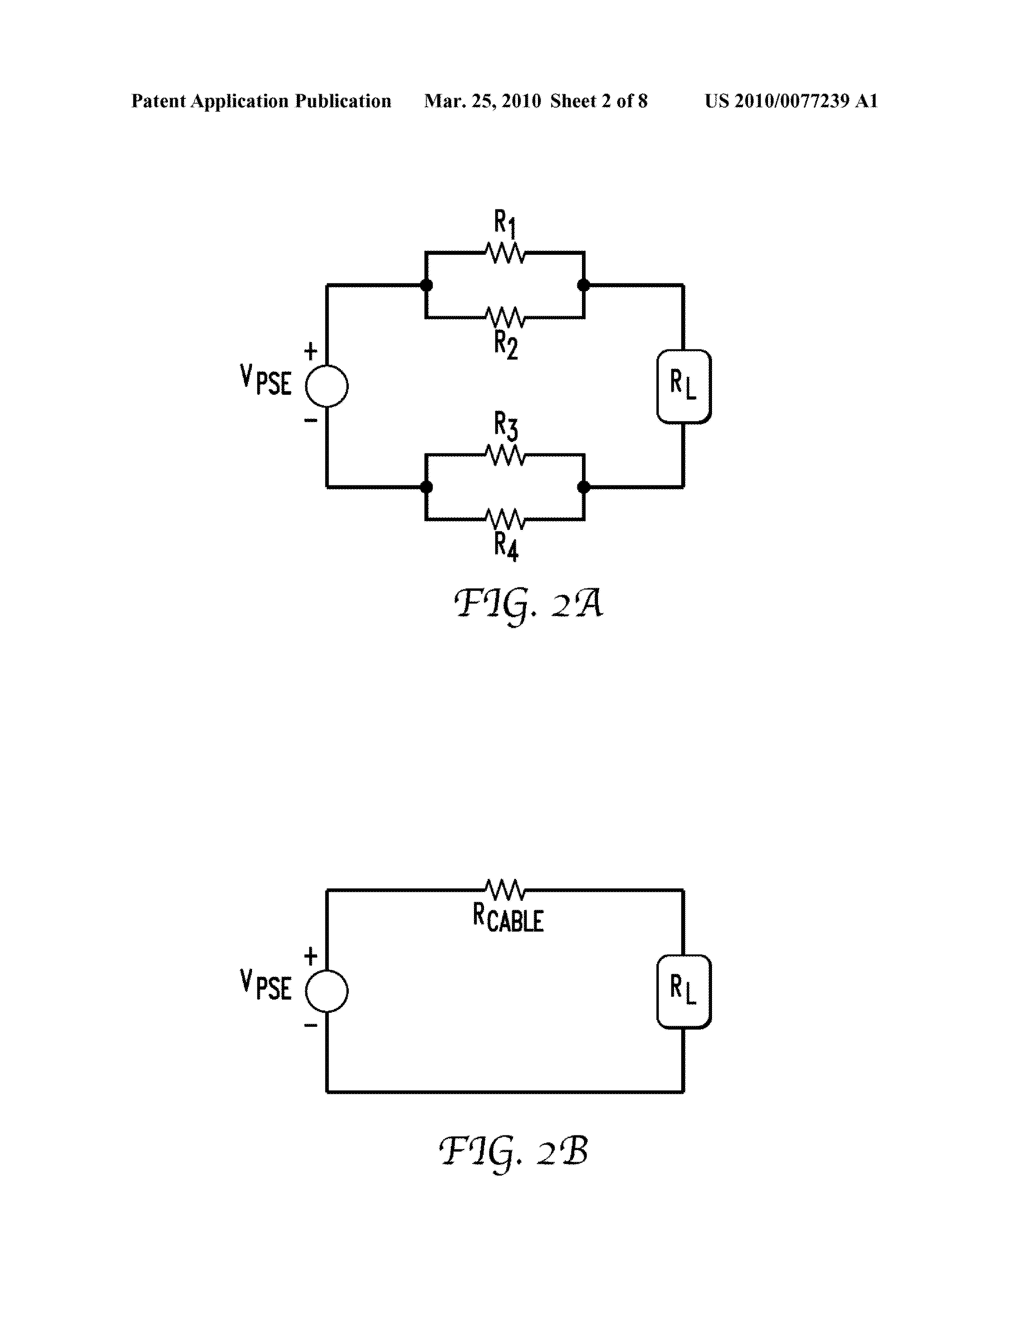 System and Method for Controlling Power Delivered to a Powered Device Based on Cable Characteristics - diagram, schematic, and image 03